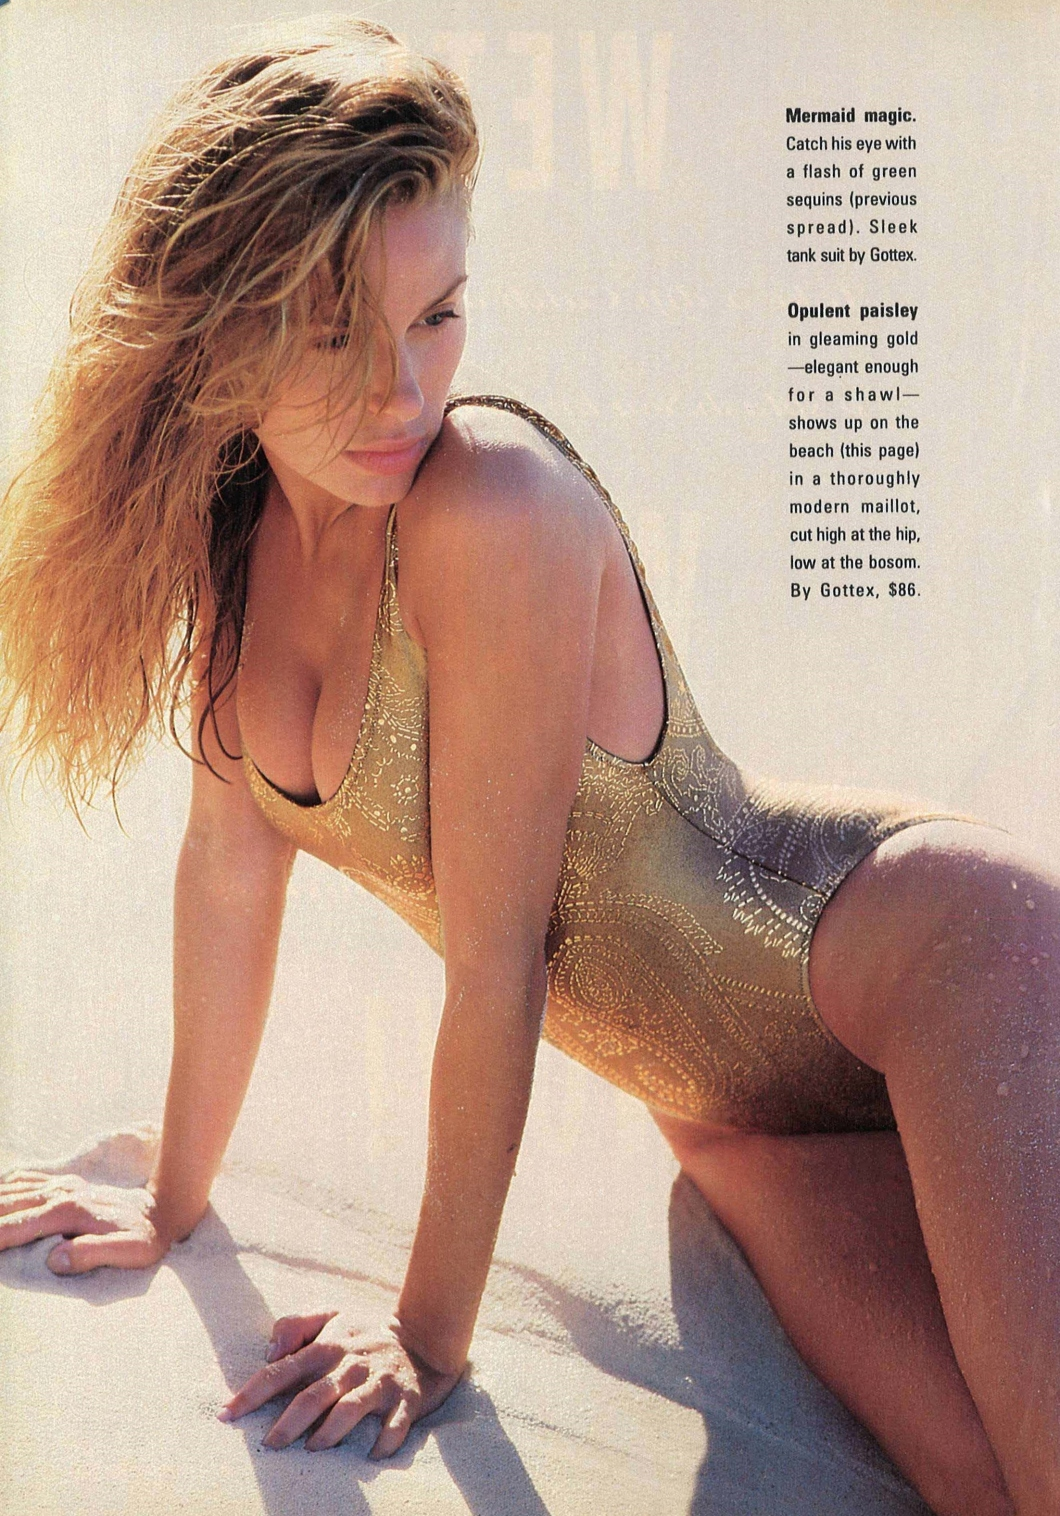 cosmo june 1990 vintage swimsuit editorial